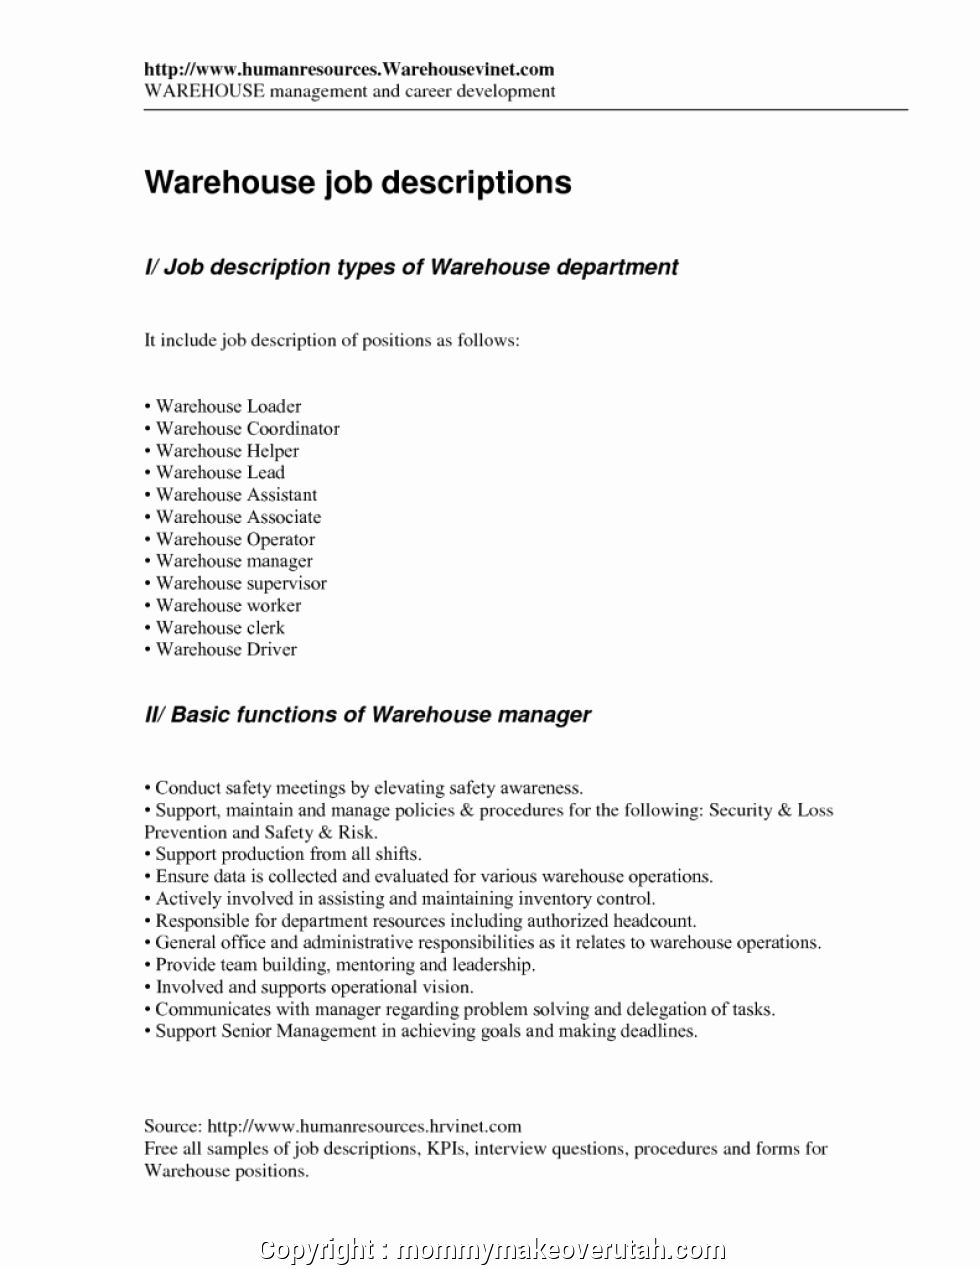 20 Warehouse Job Description Resume in 2020 (With images